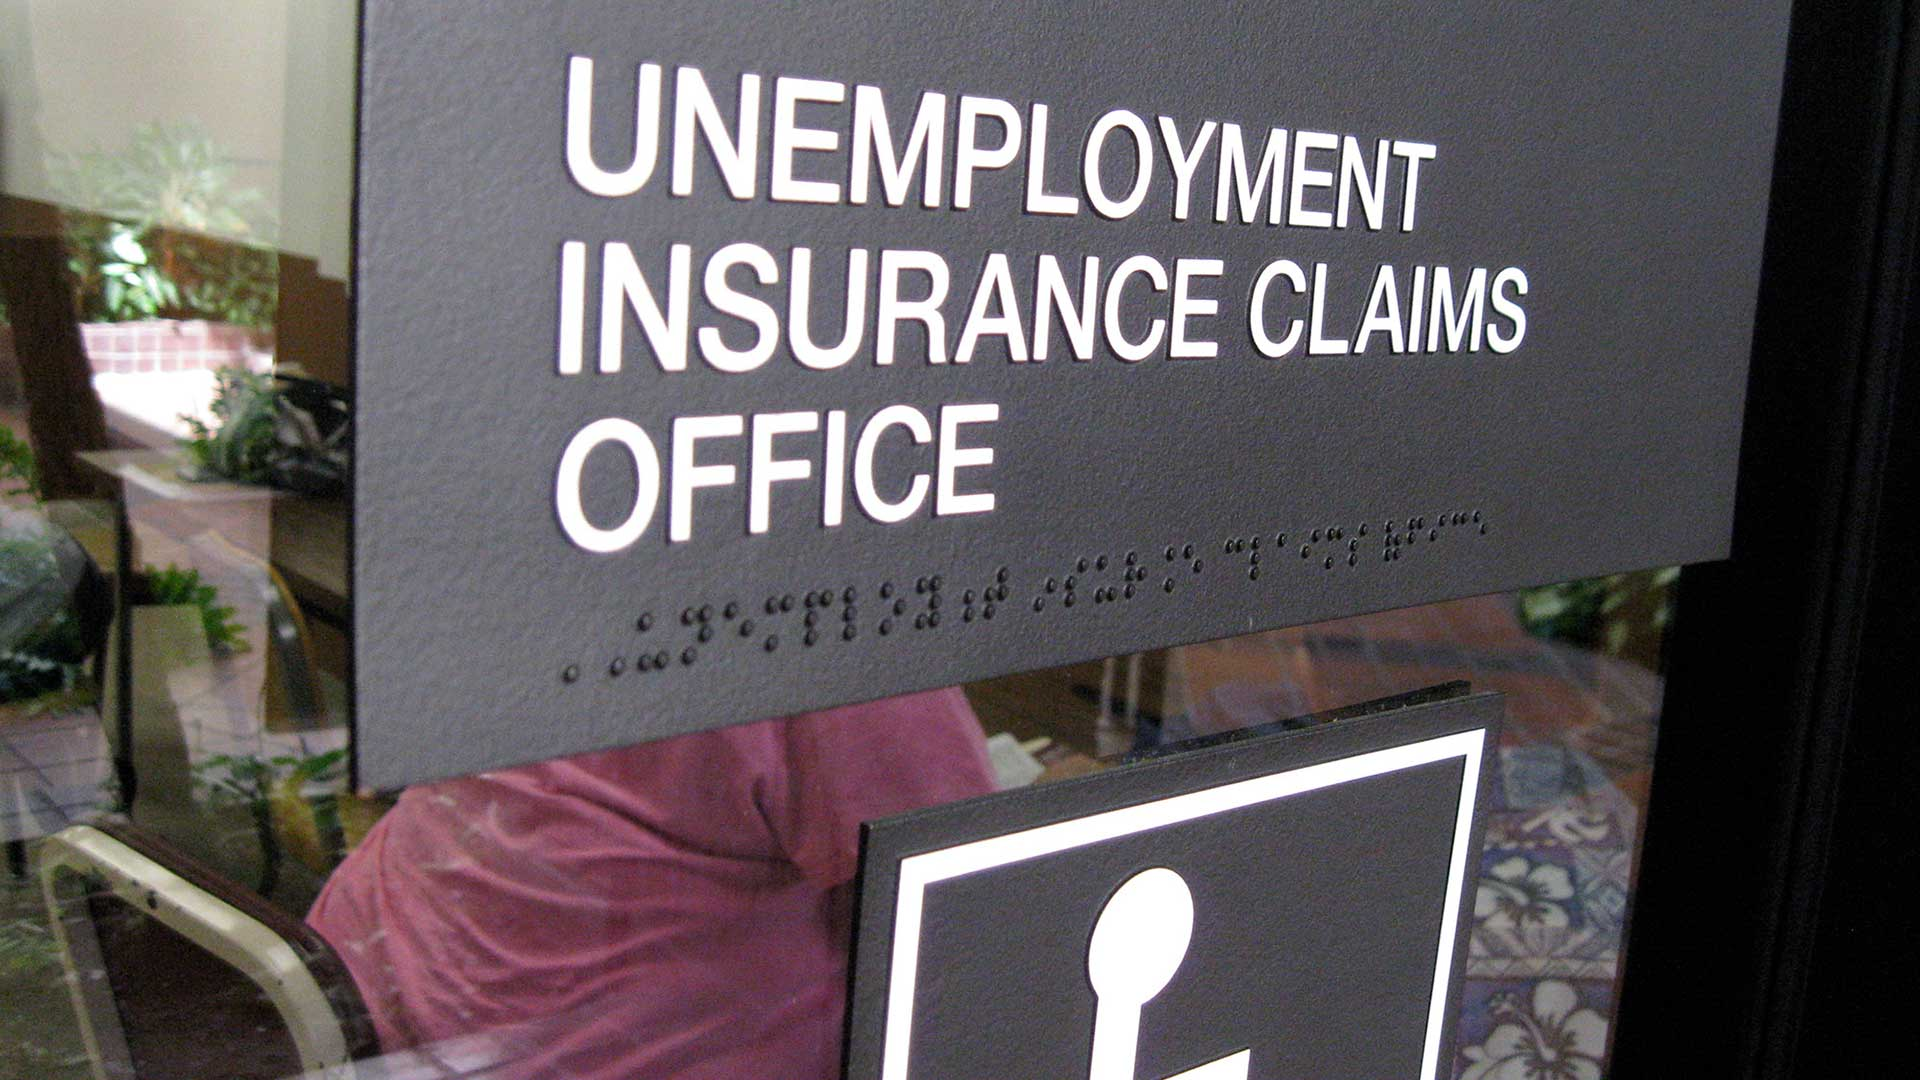 An unemployment insurance claims office.